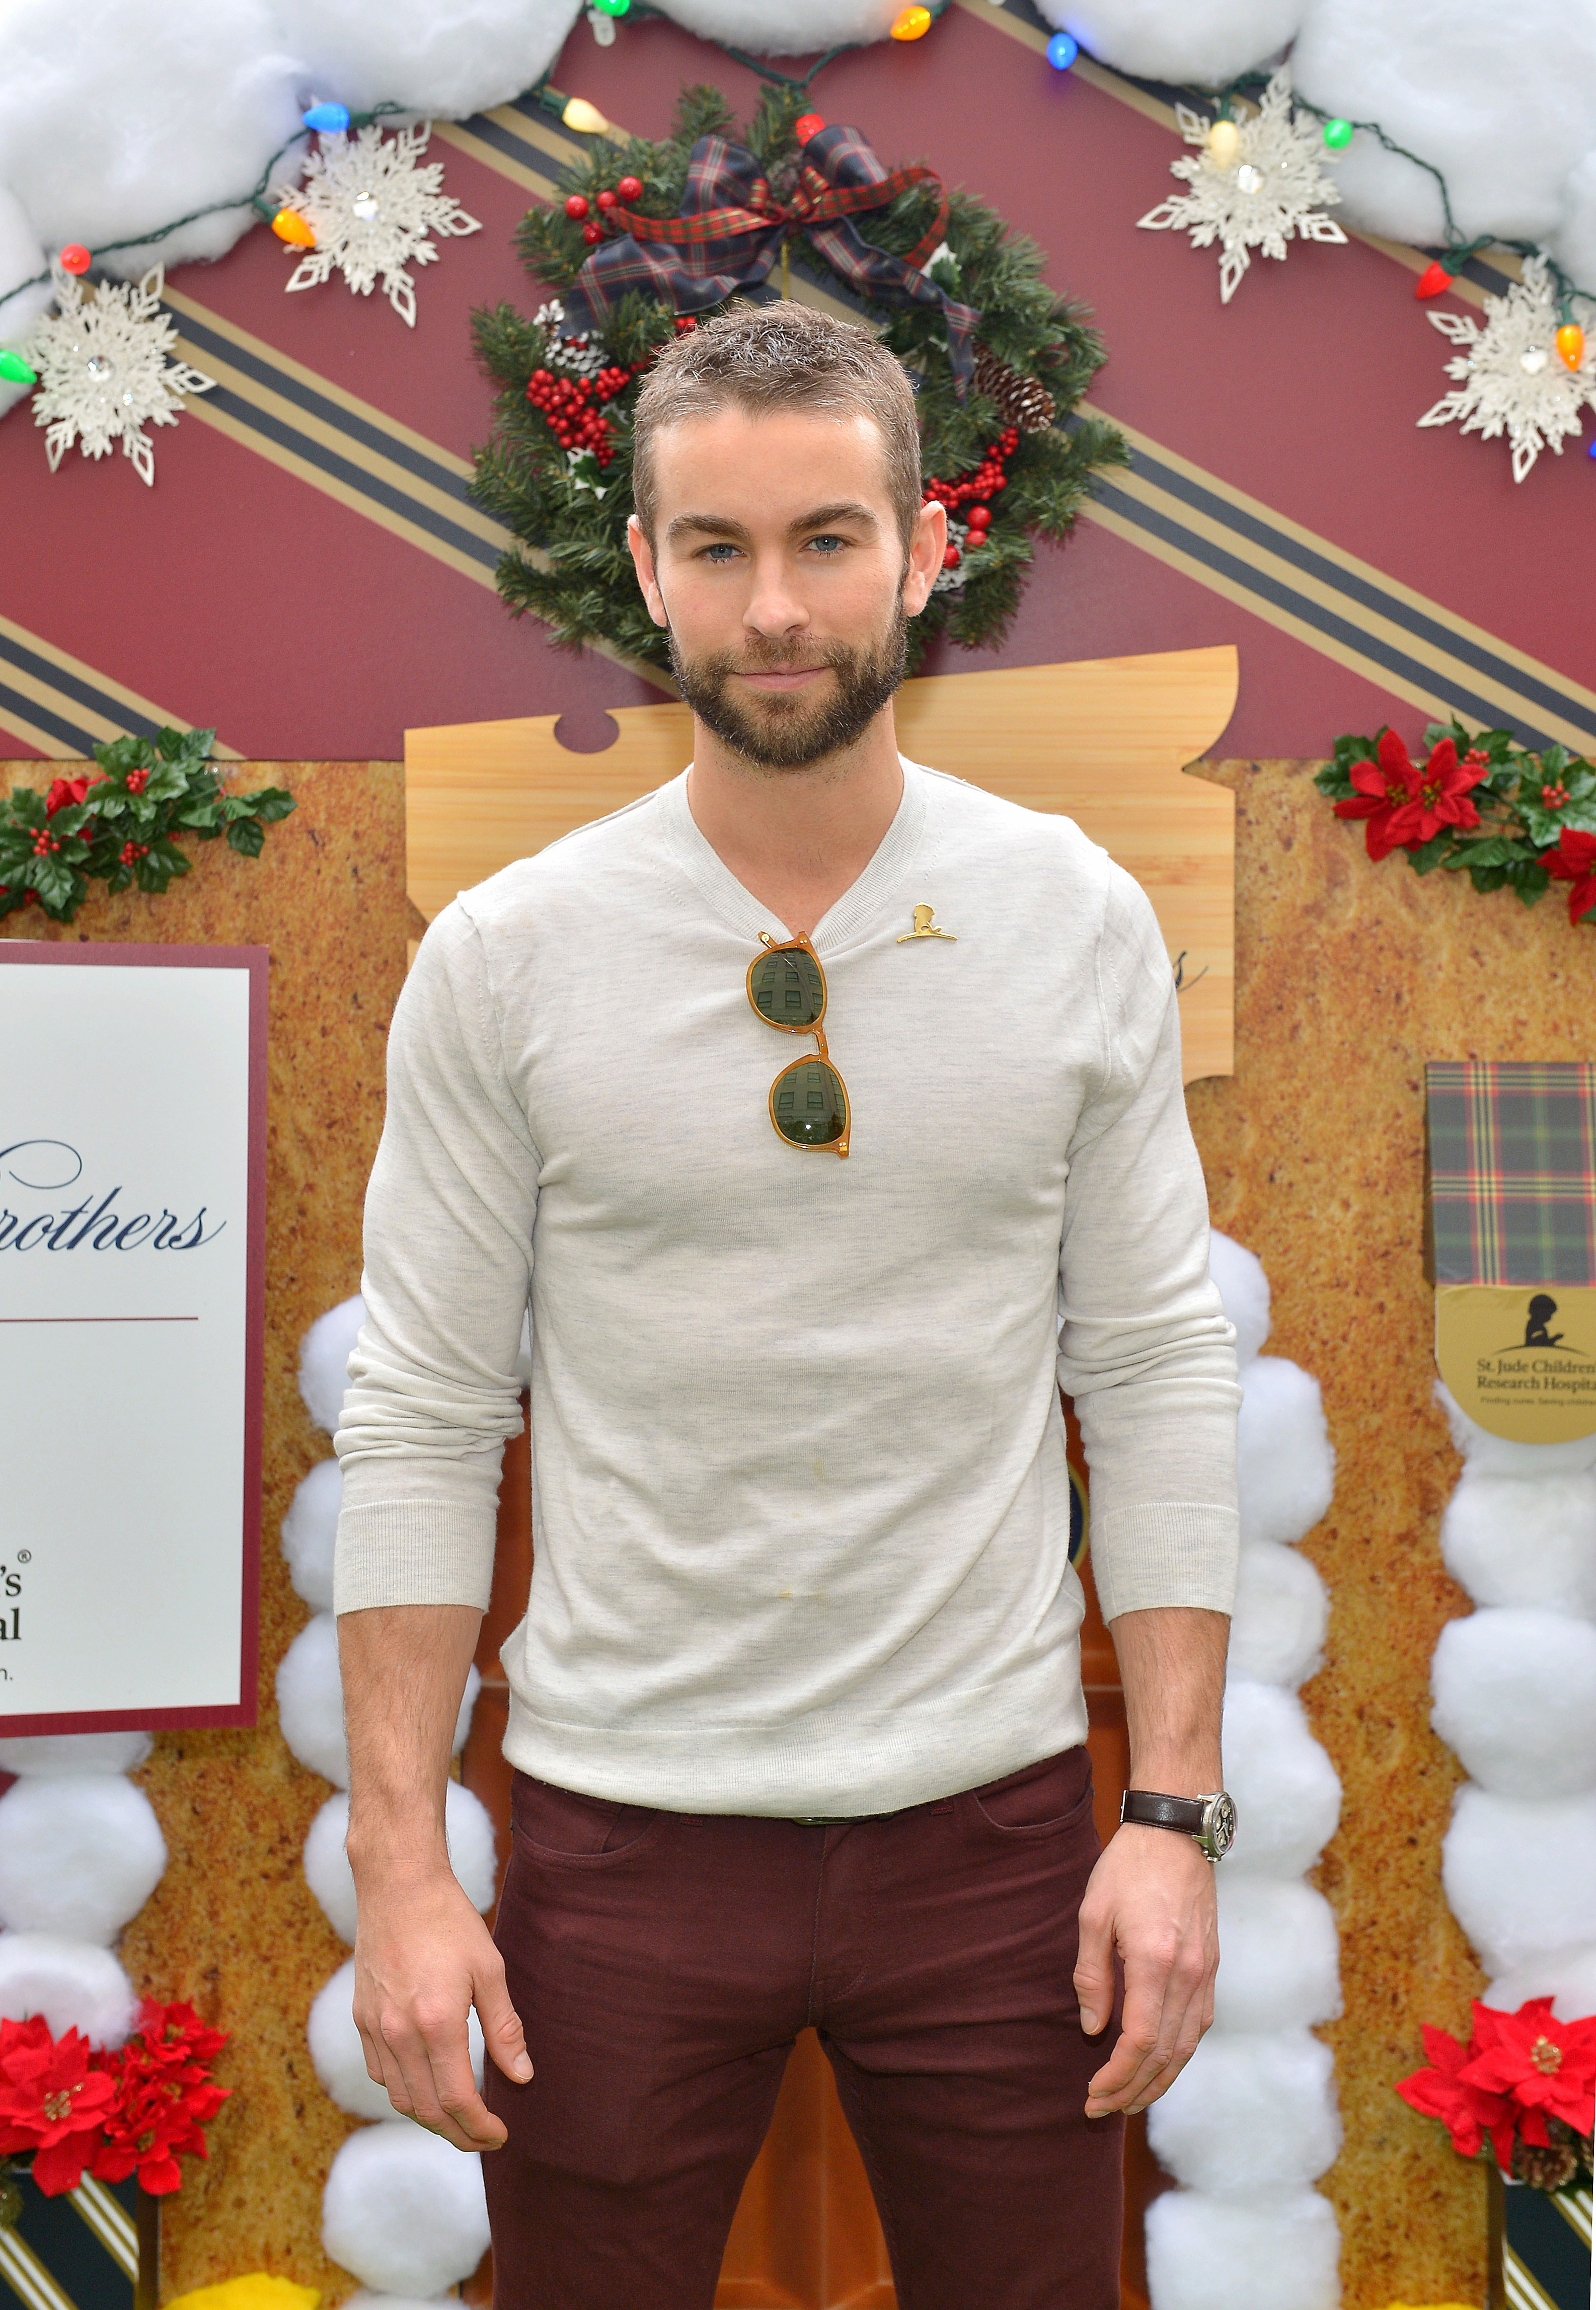 Chace Crawford Is Game for a 'Gossip Girl' Revival: 'It Was Such a Fun Part of My Life' - Chace Crawford at The Brooks Brothers and St Jude Children's Research Hospital Annual Holiday Celebration on December 9, 2018 in Beverly Hills, California.